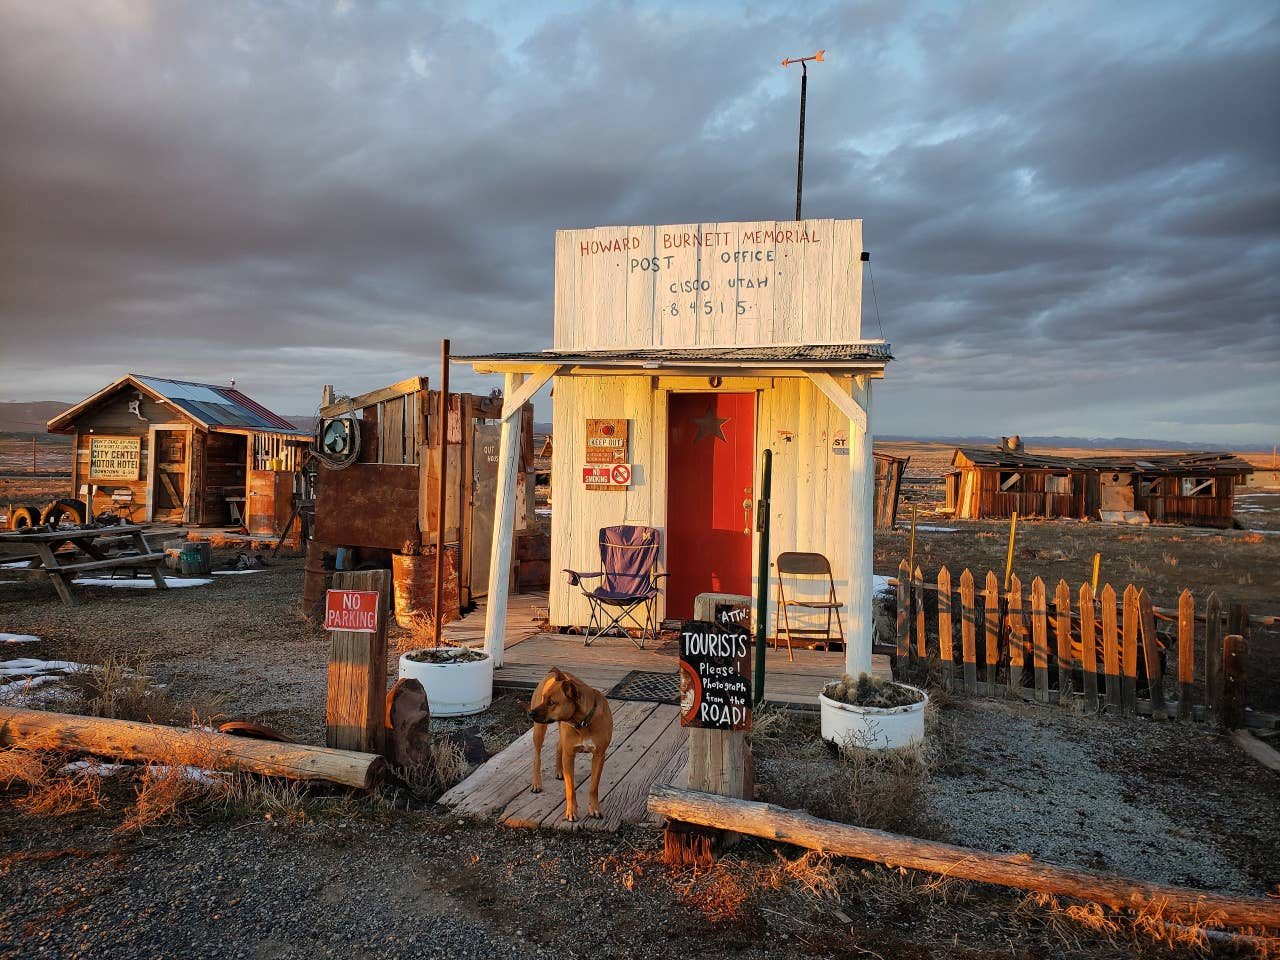 You Can Spend the Night in This Ghost Town for $31